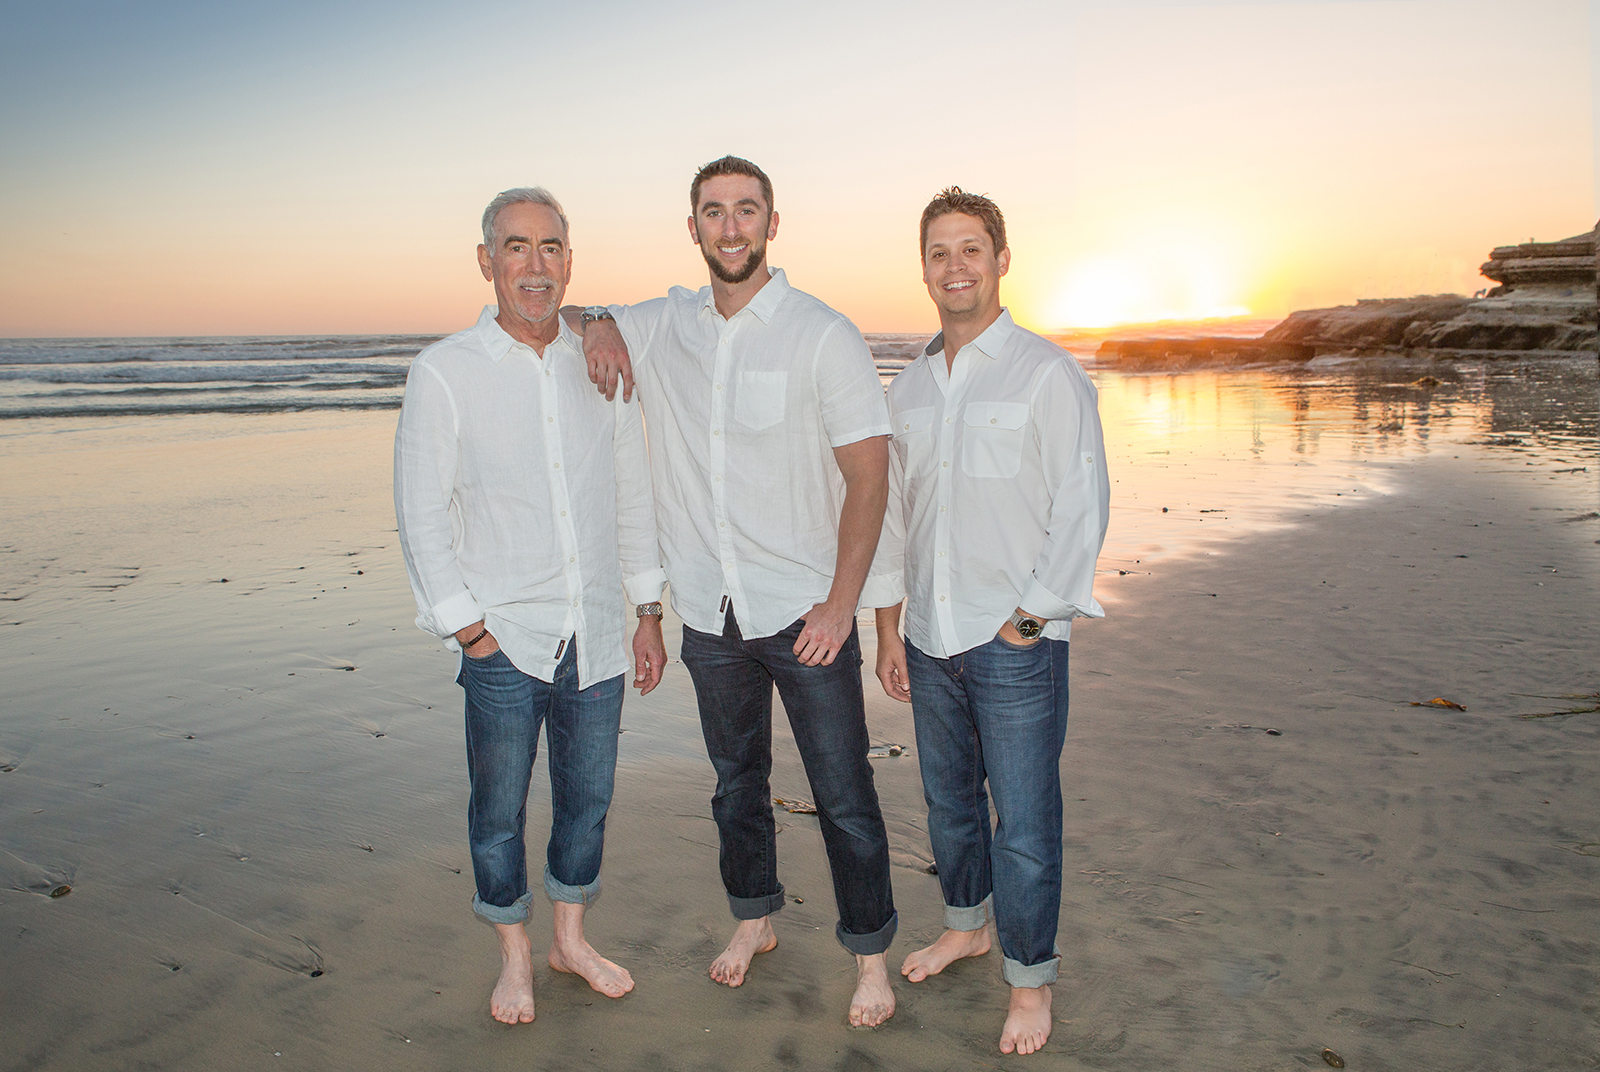 family photos taken on the beach in Del Mar by a professional photographer in San Diego and Oceanside.